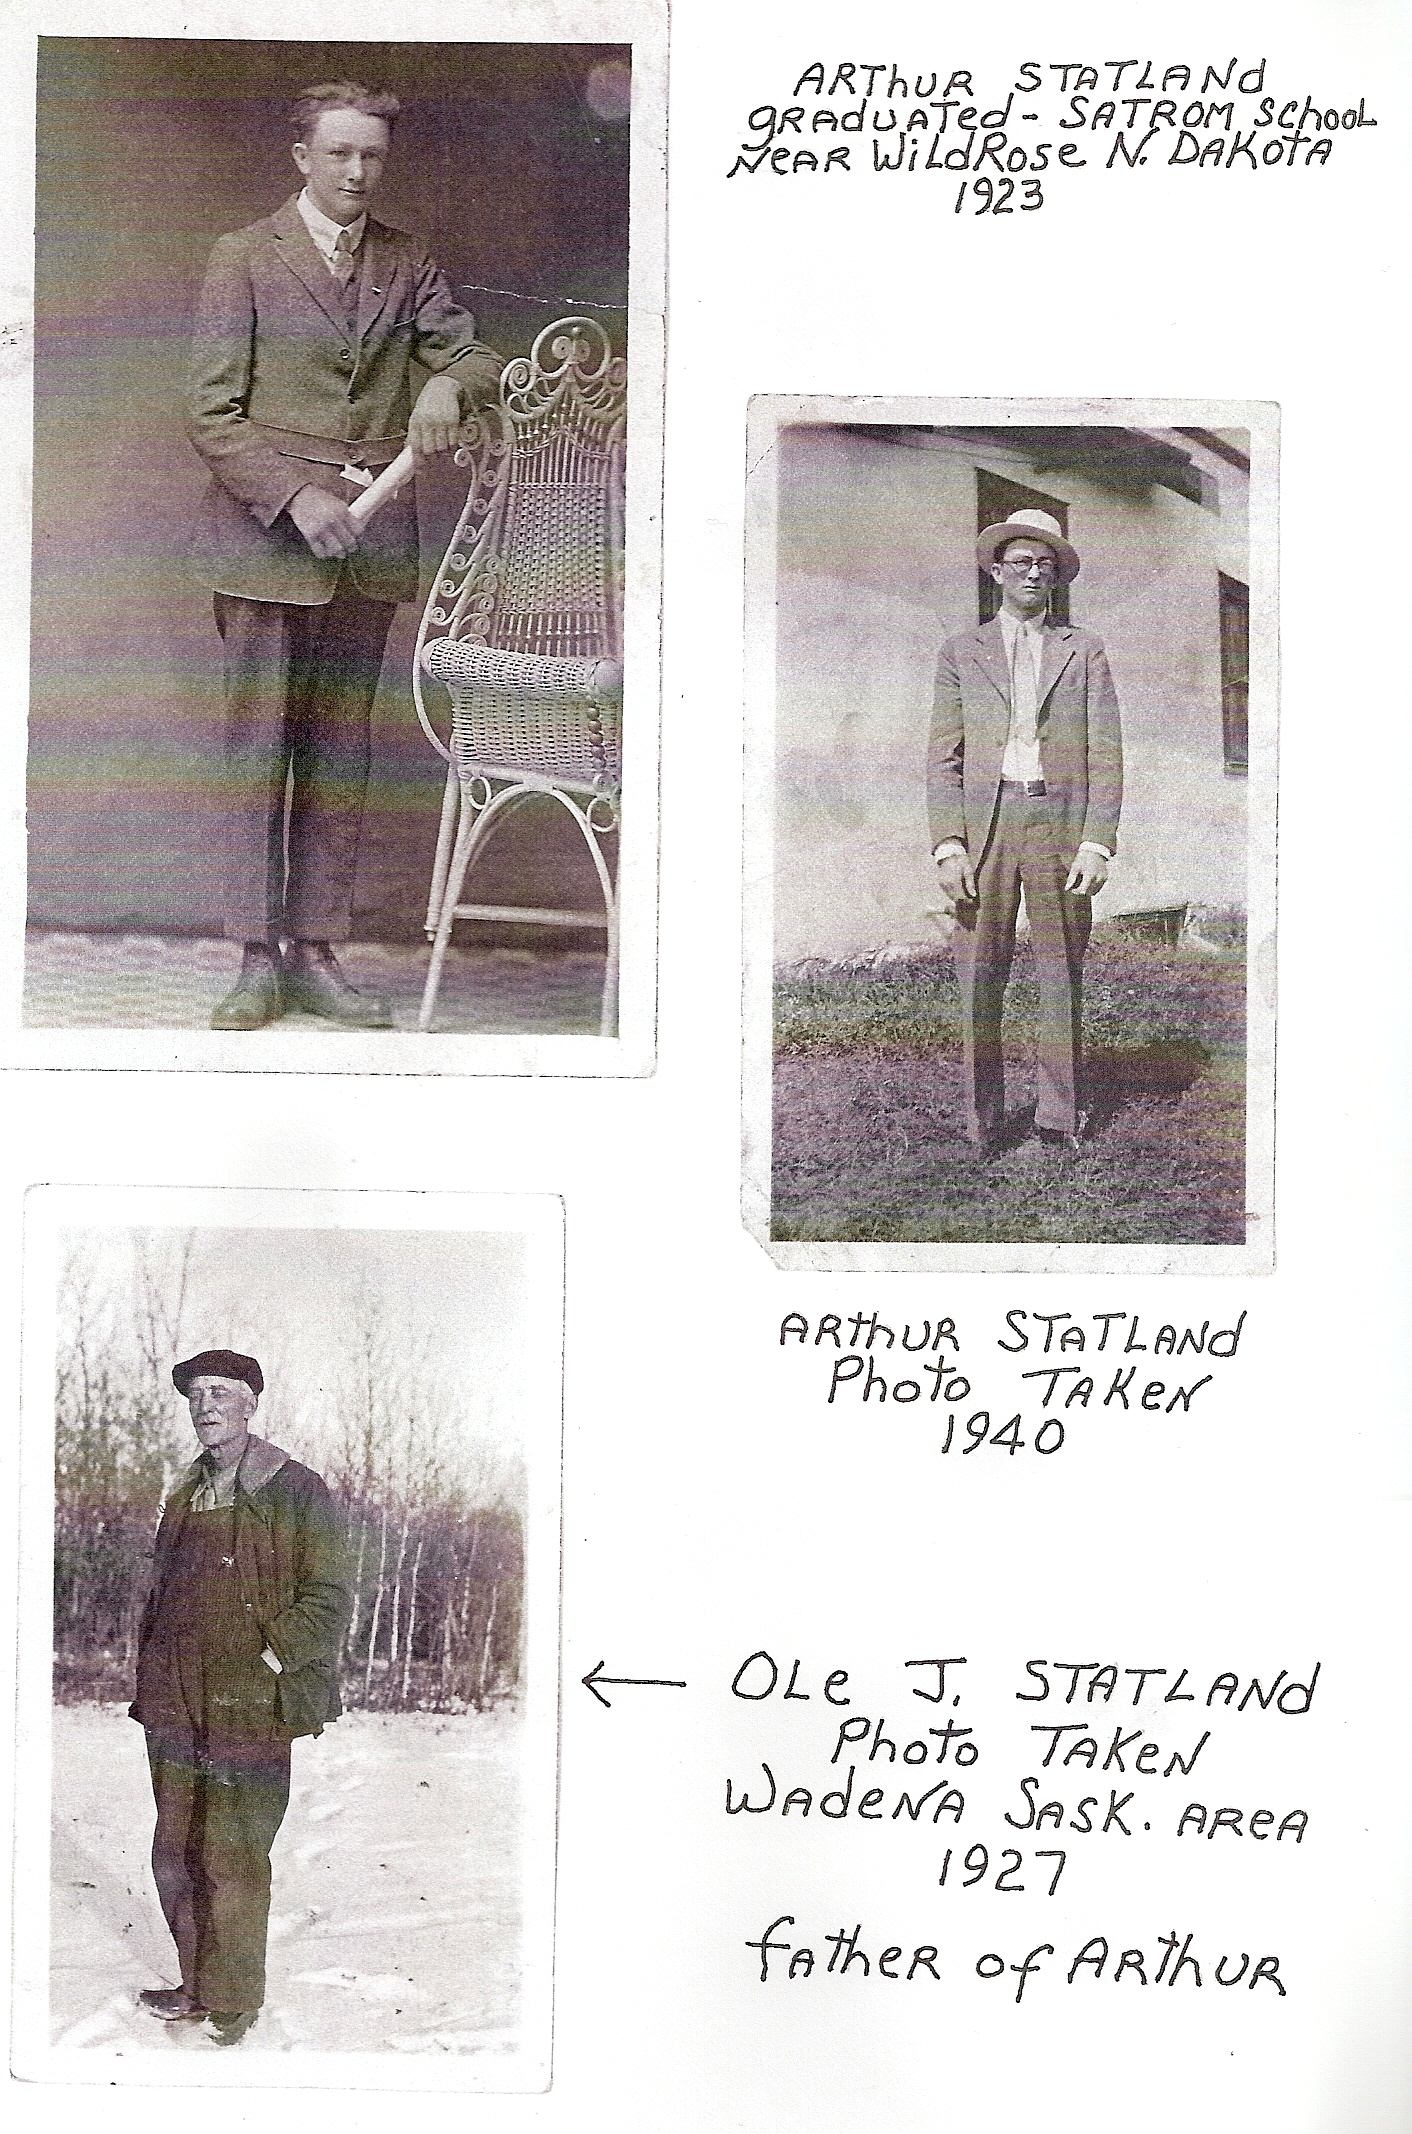 Arther and Ole Statland (father and son)